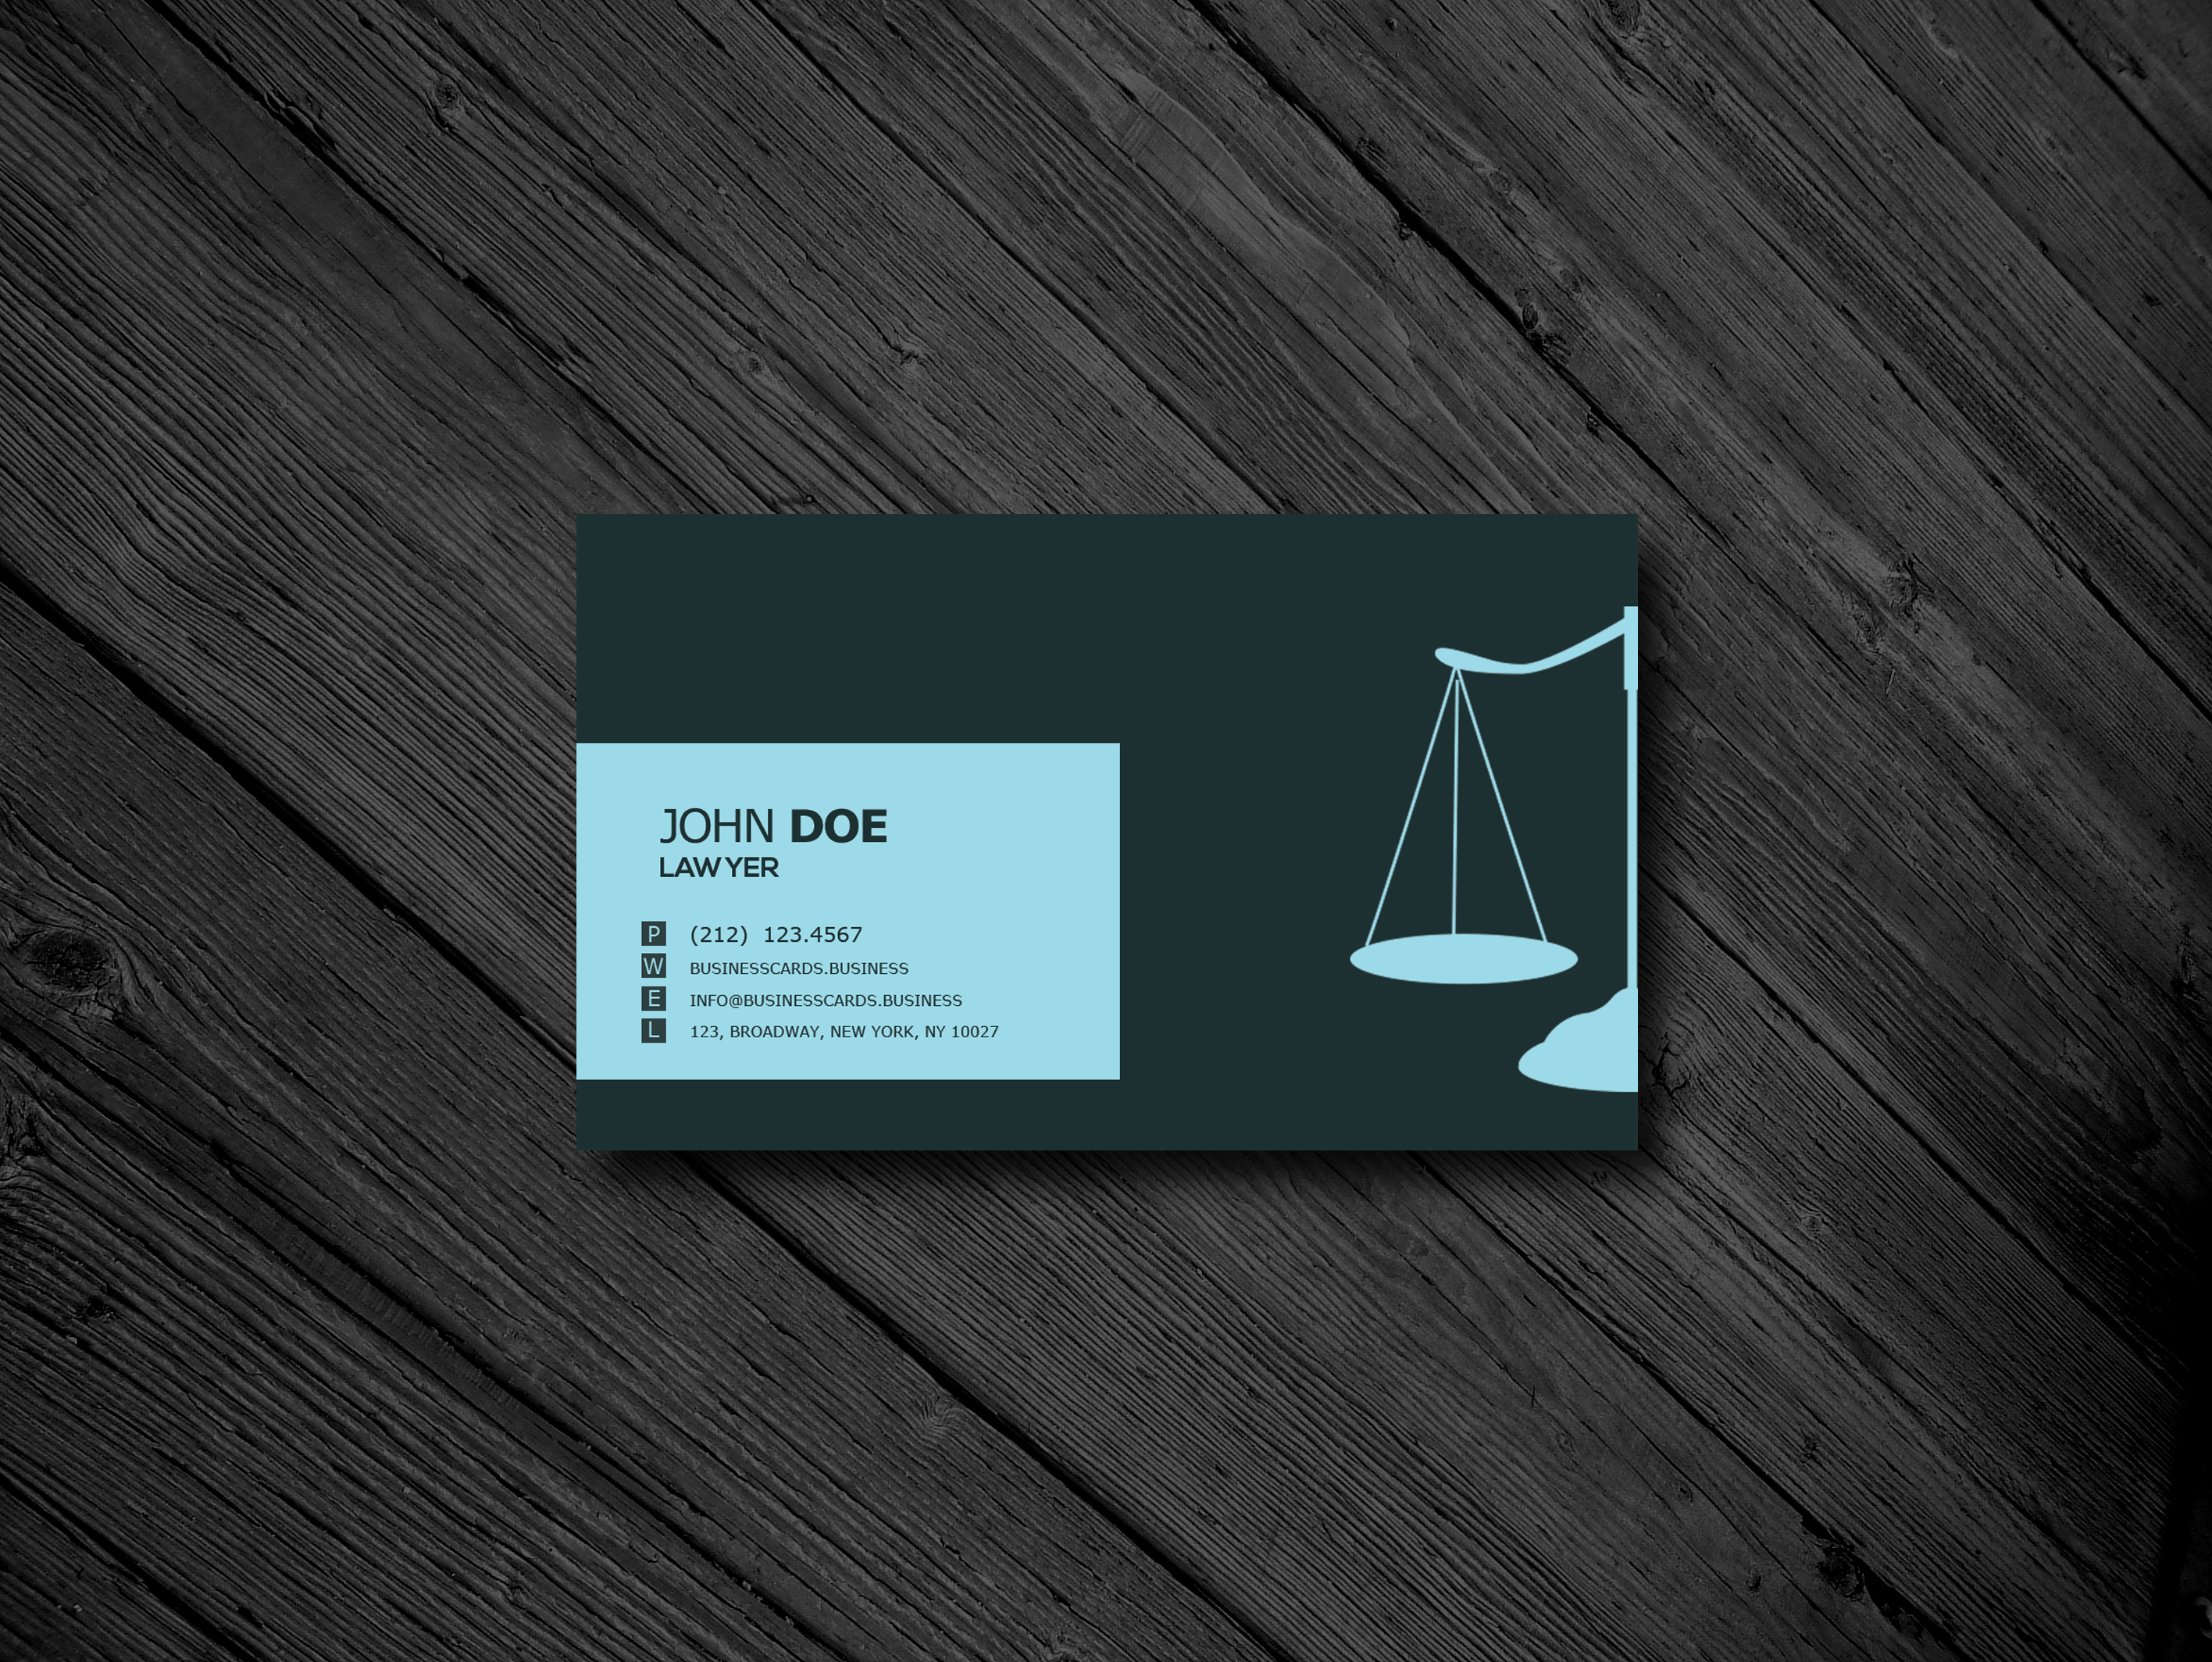 Free business card templates business cards templates free lawyer business card psd template friedricerecipe Image collections